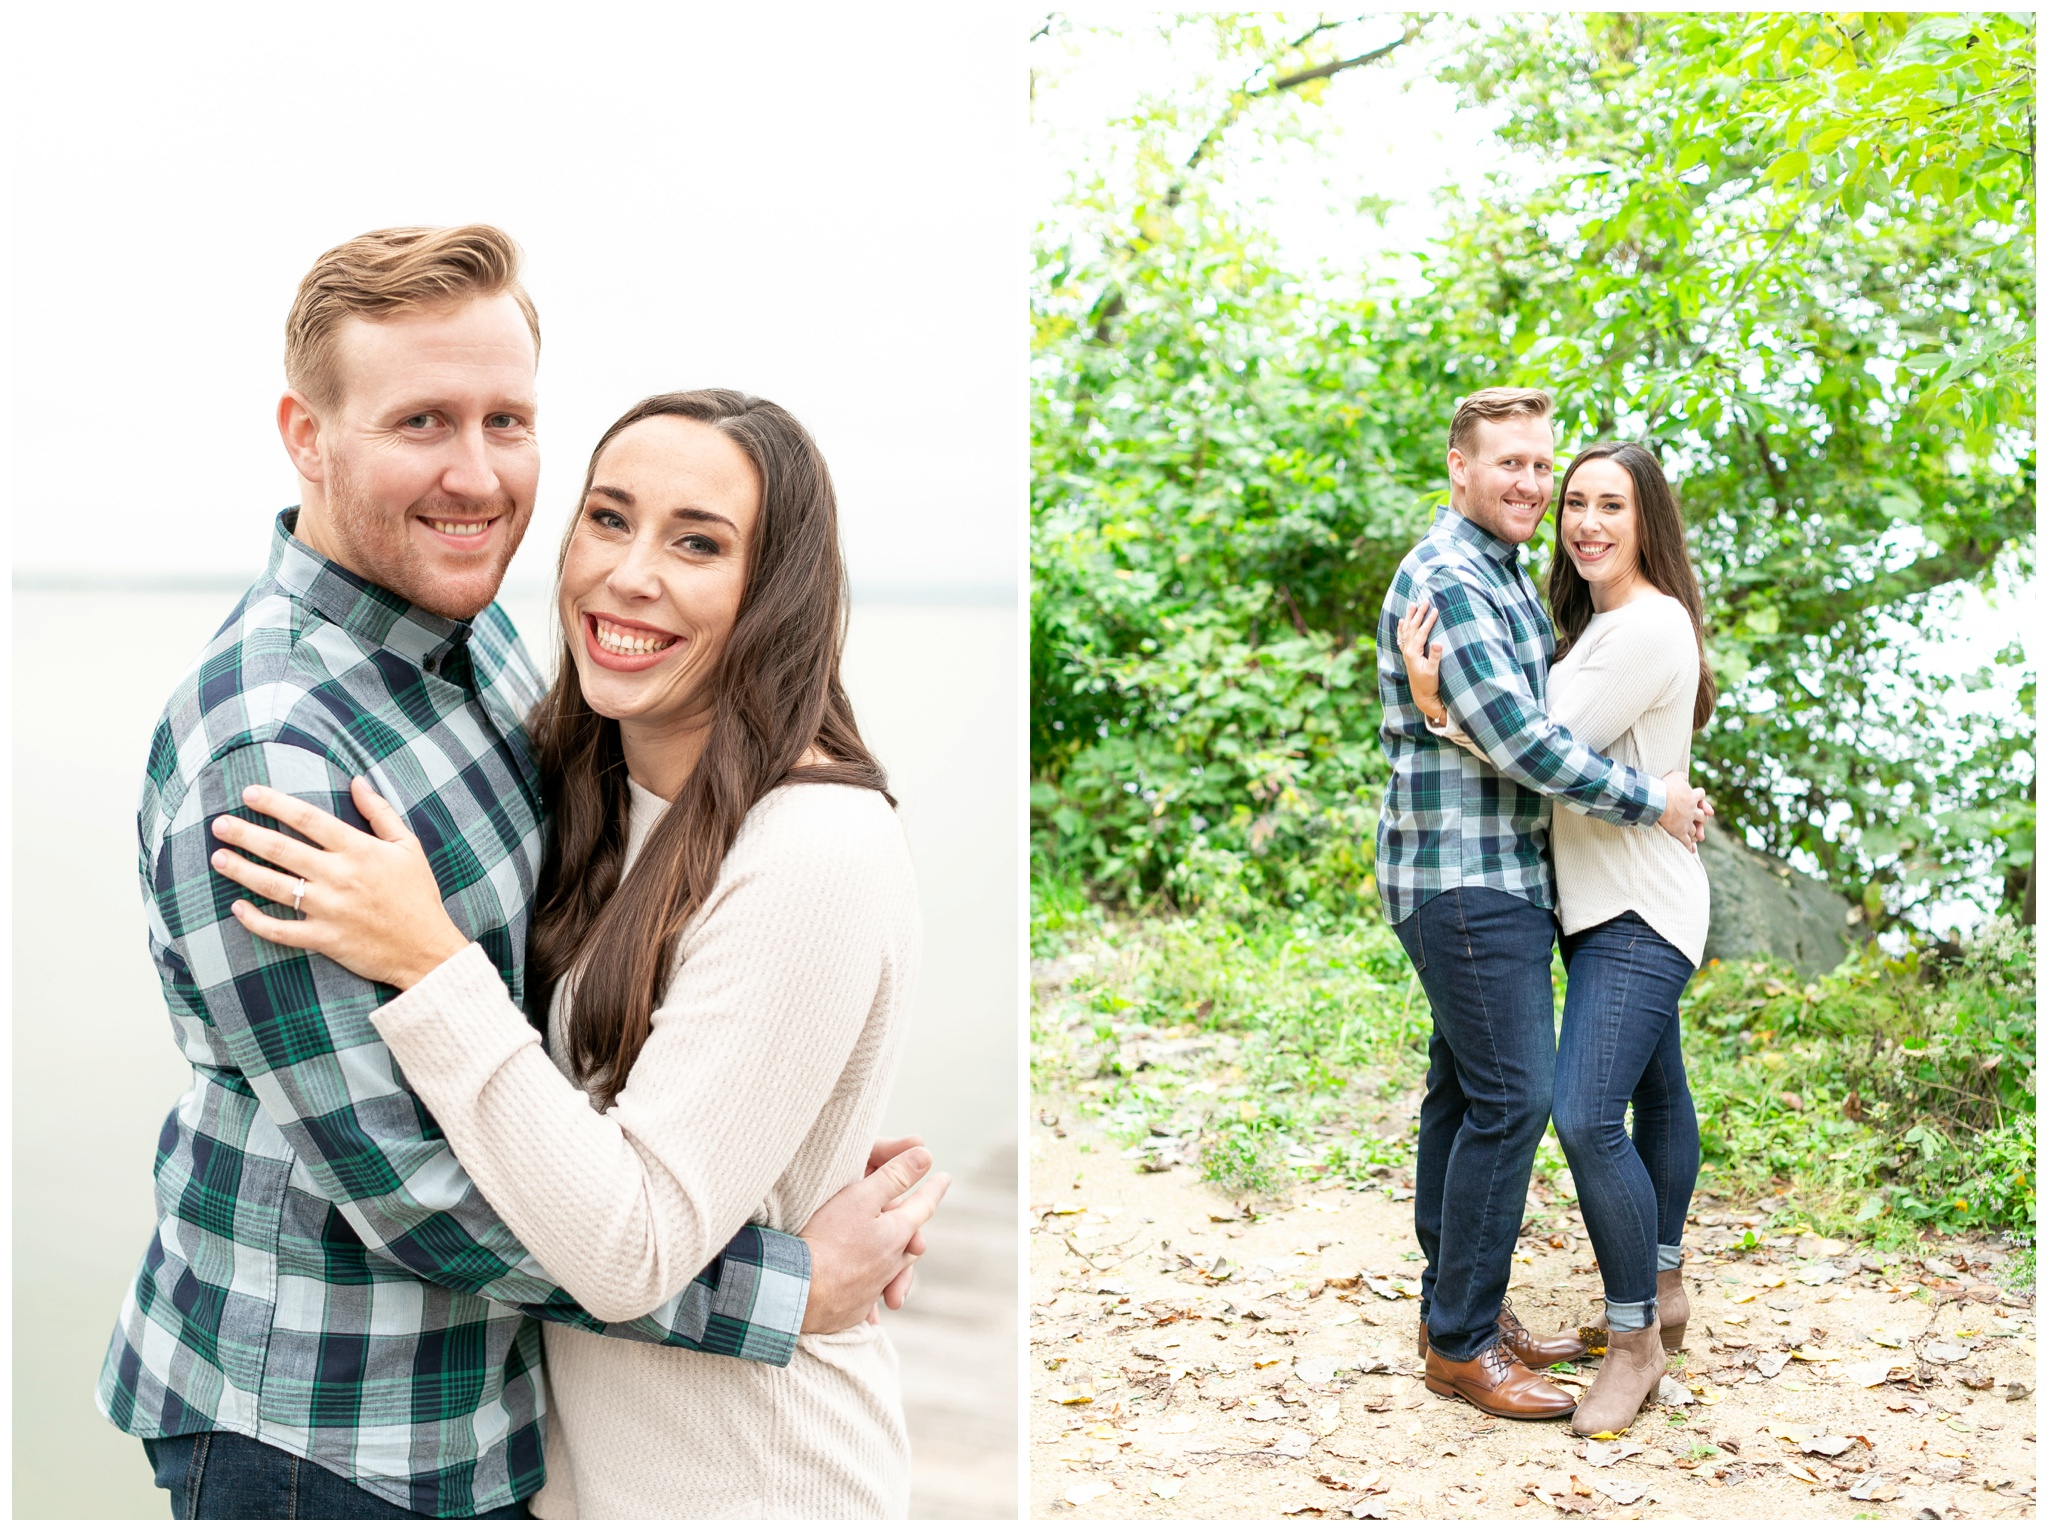 memorial_union_engagement_session_madison_wisconsin_1649.jpg